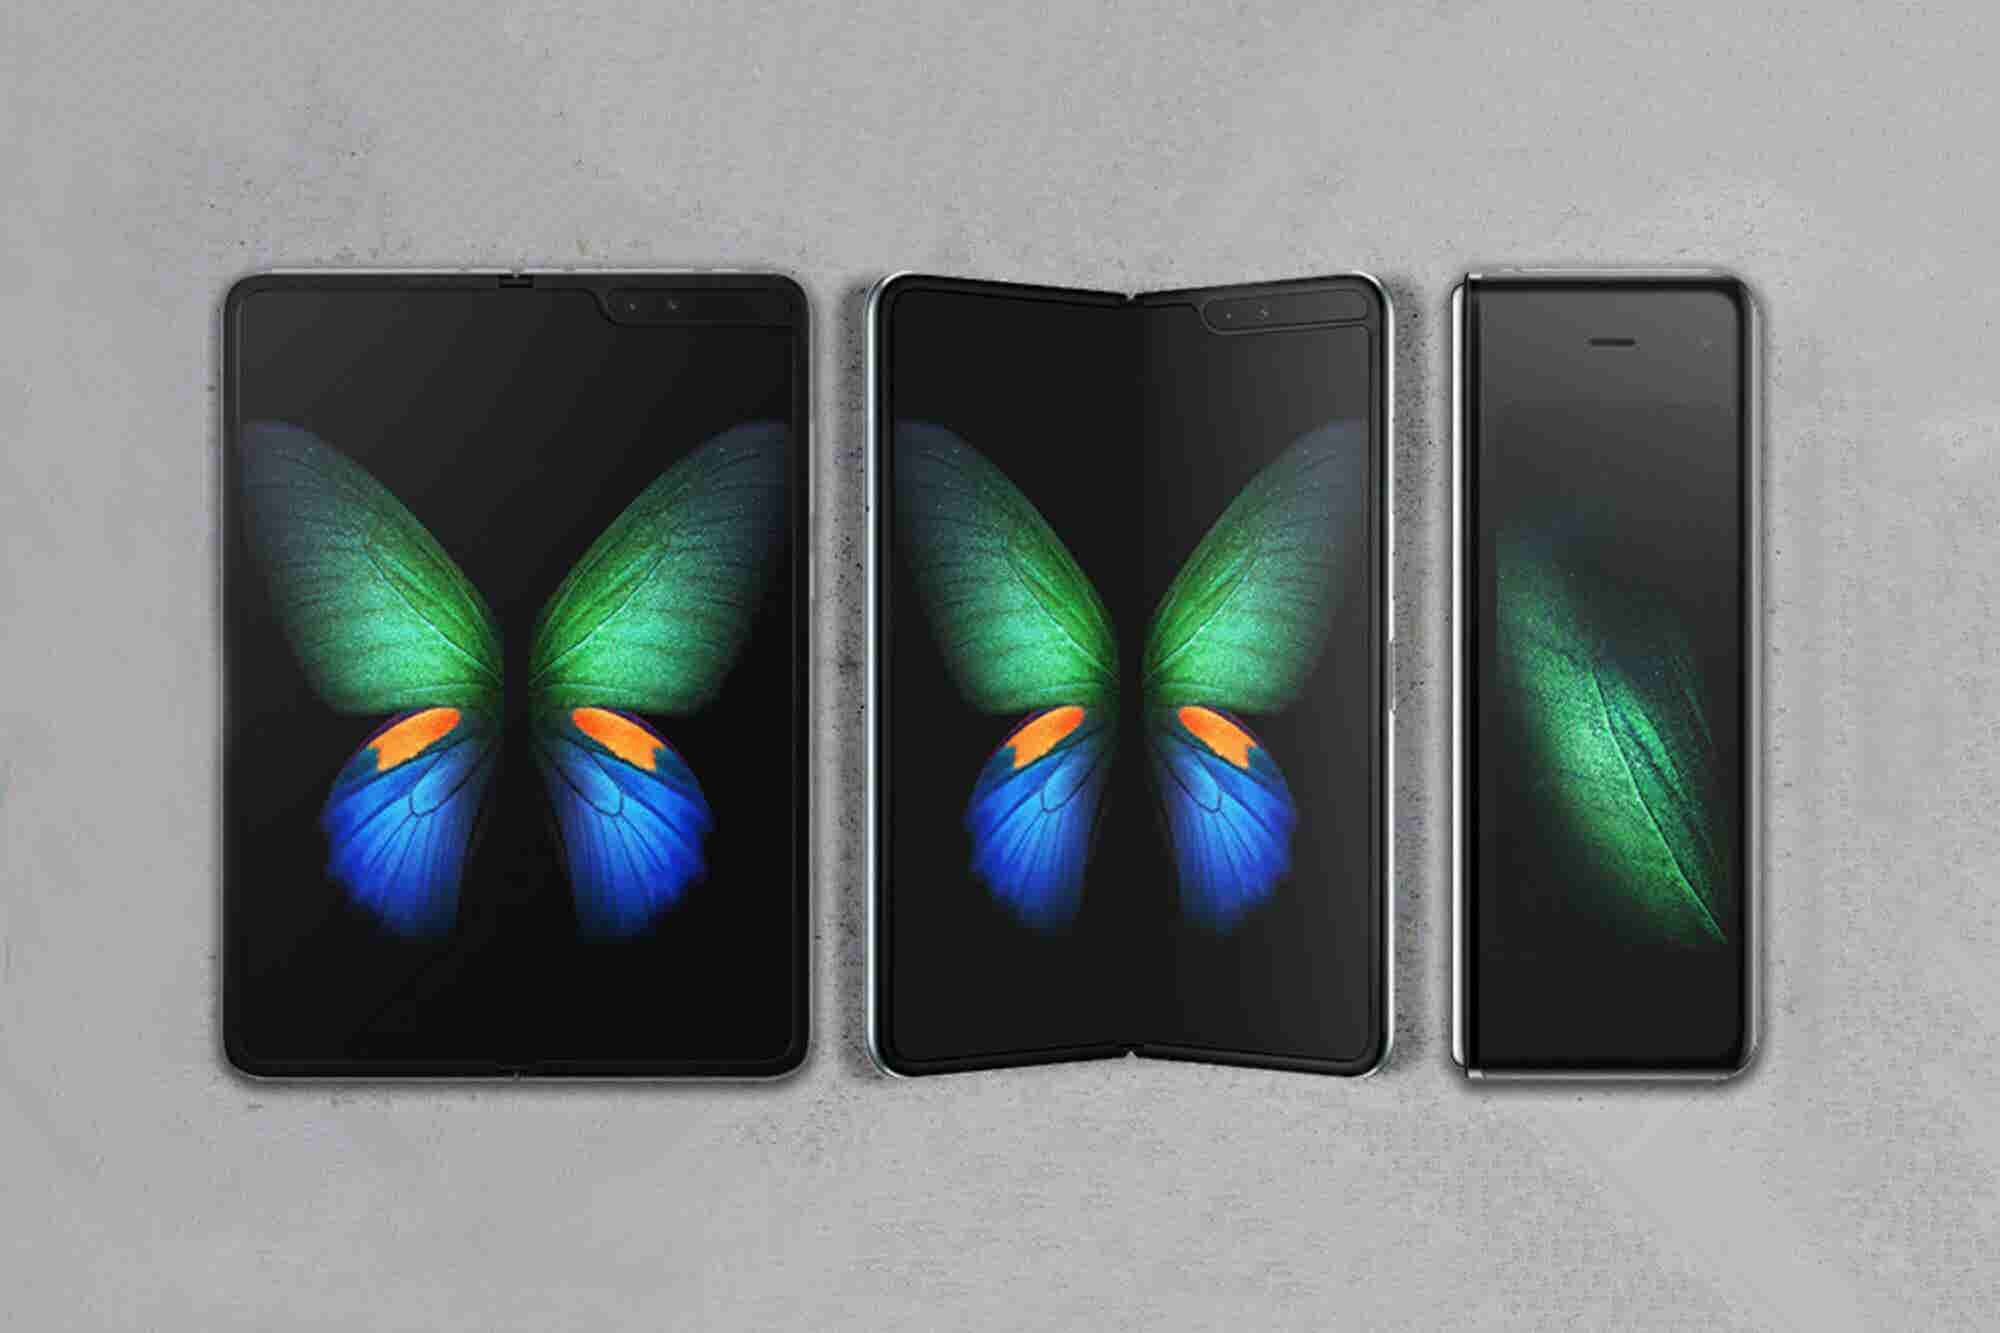 Samsung Galaxy Fold Smartphone Will Set You Back at Least $1,980